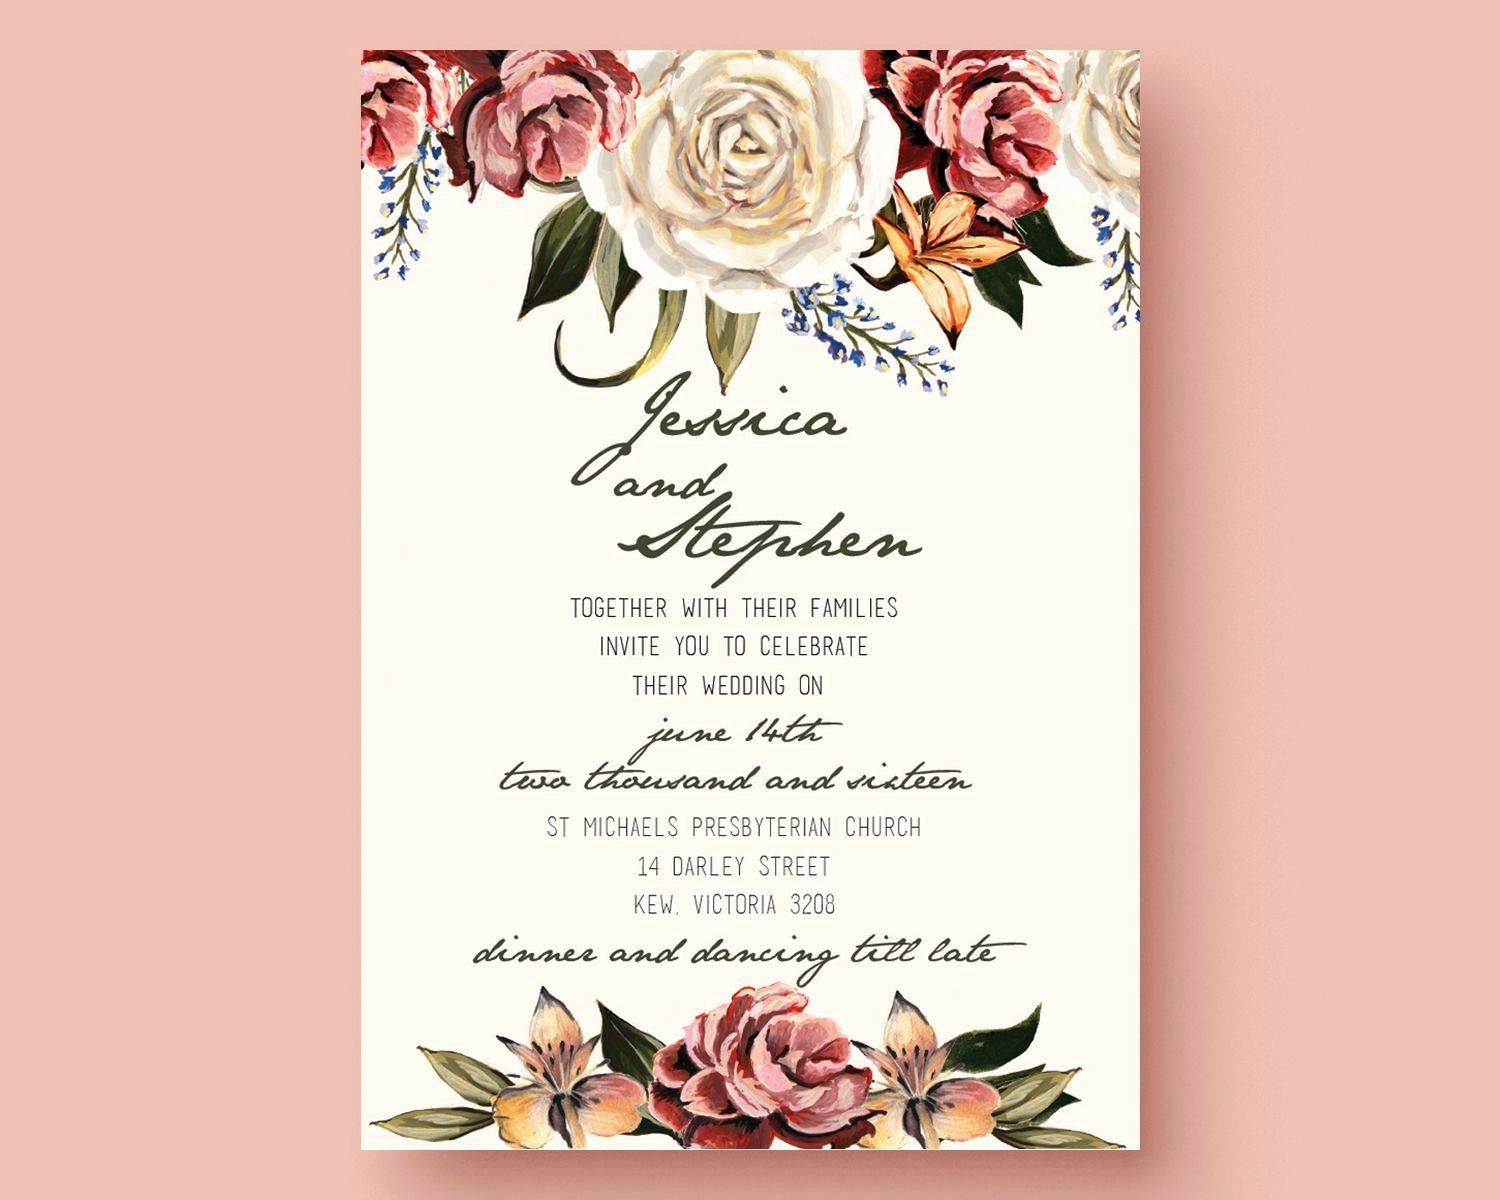 002 Awesome Free Download Marriage Invitation Template Inspiration  Card Design Psd After EffectFull